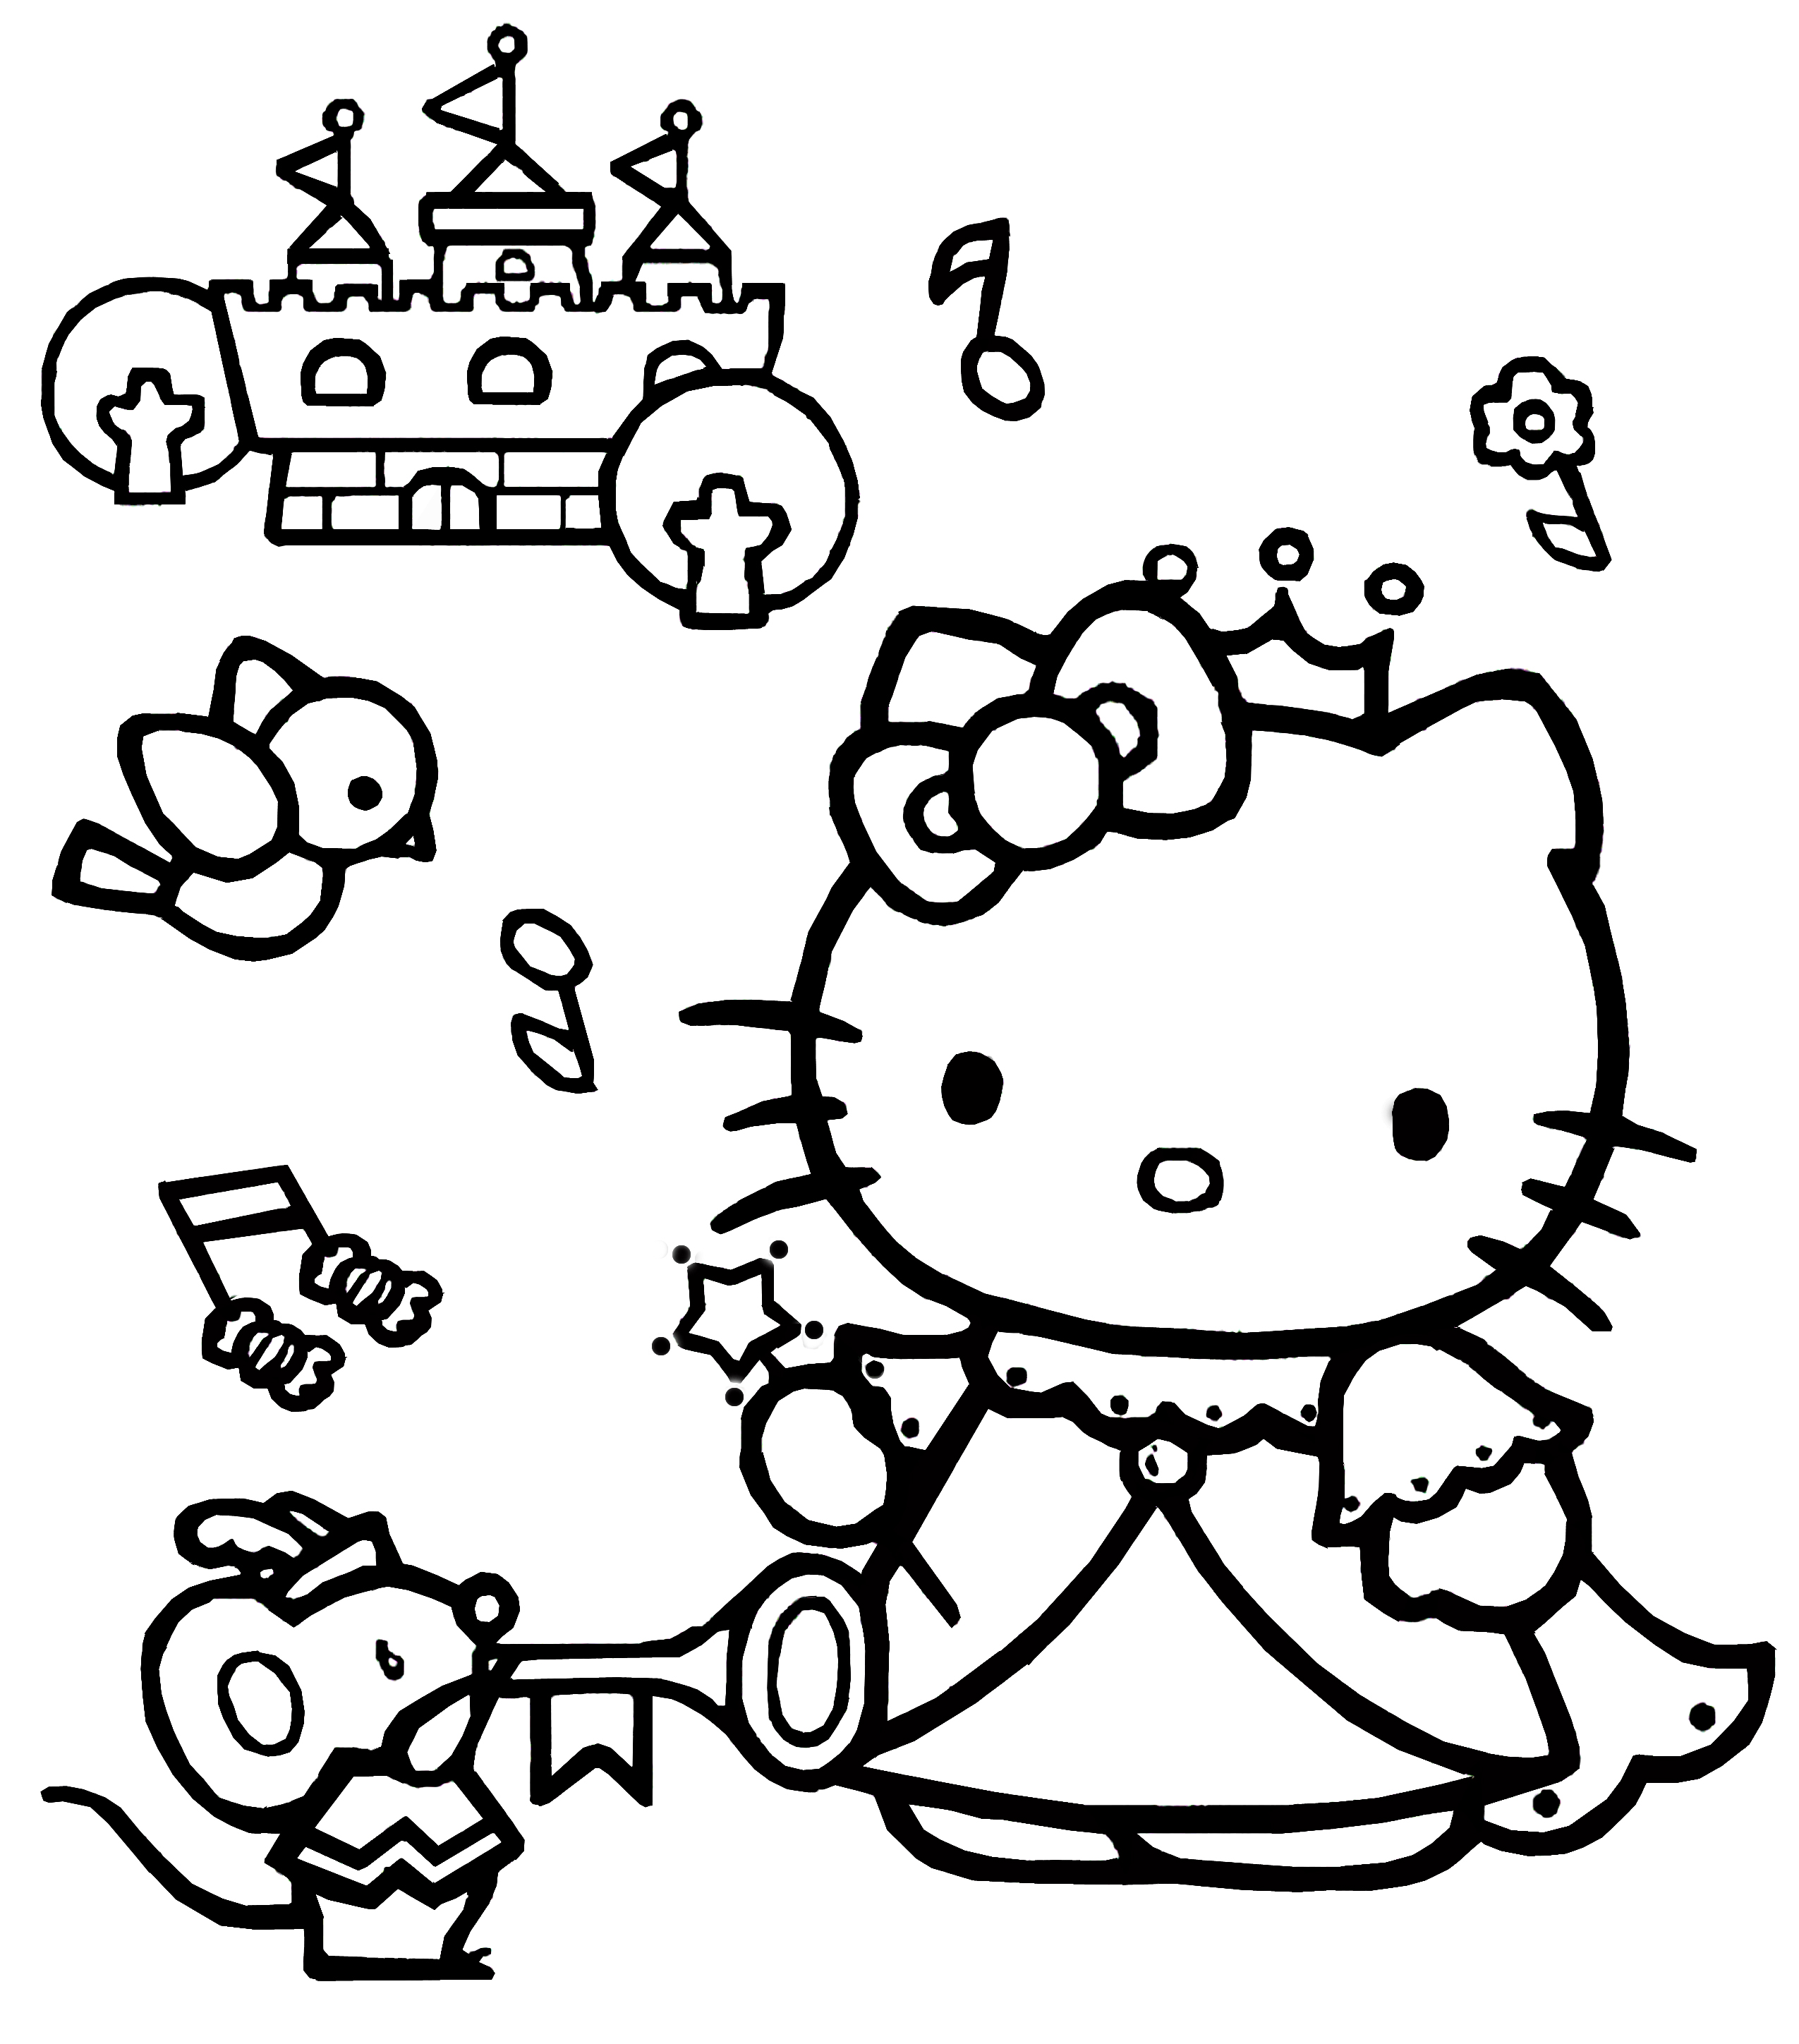 hello kitty coloring pages 03 of 15 u2013 kitty and mimmy hd